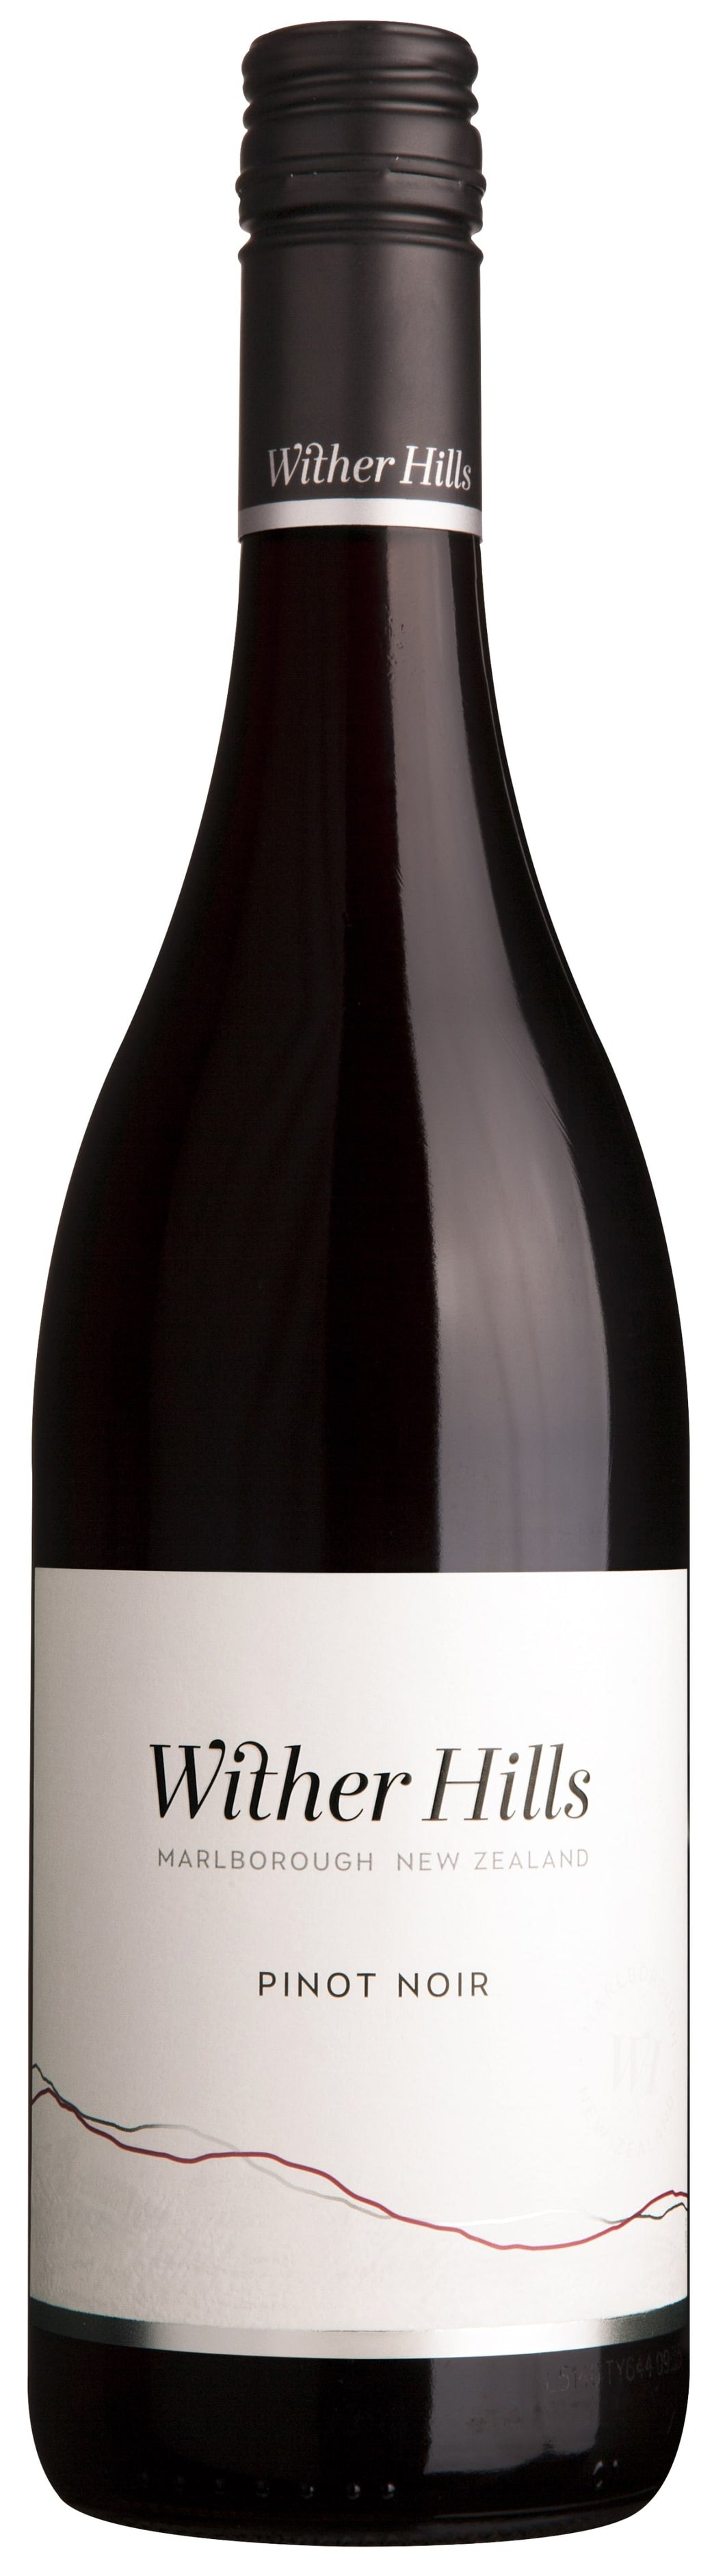 Wither Hills 2013 Pinot Noir - Grapes & Hops Deli